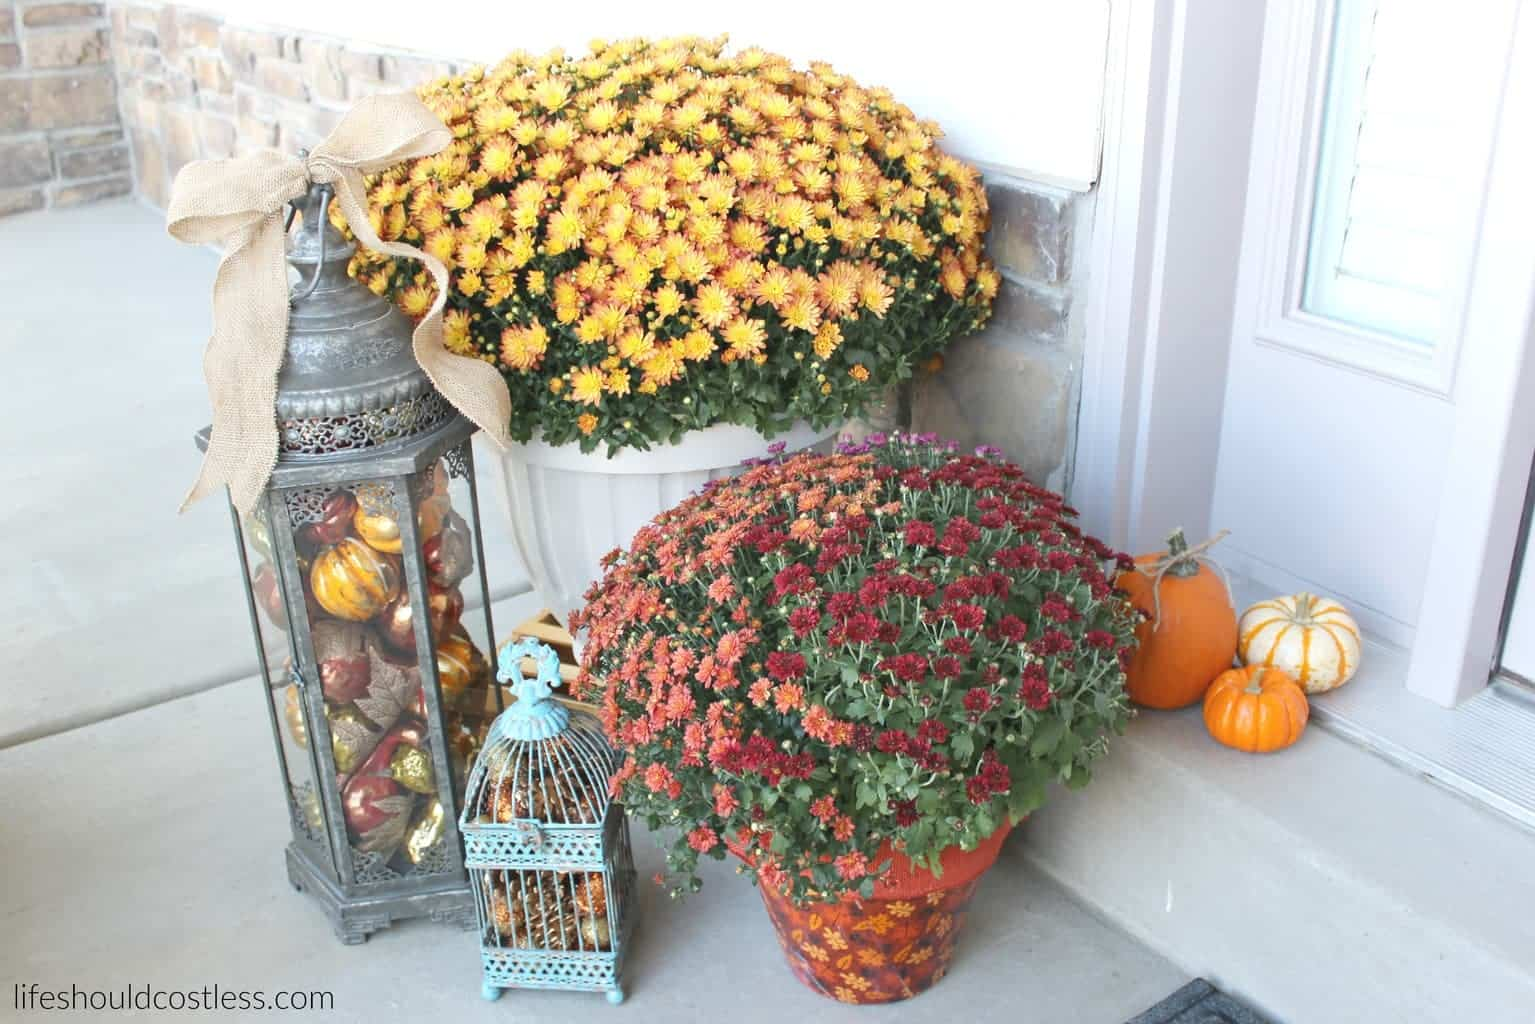 Rustic fall porch decor reveal. See this post and many more popular decor pins at lifeshouldcostless.com. Lantern filled with fall decor.